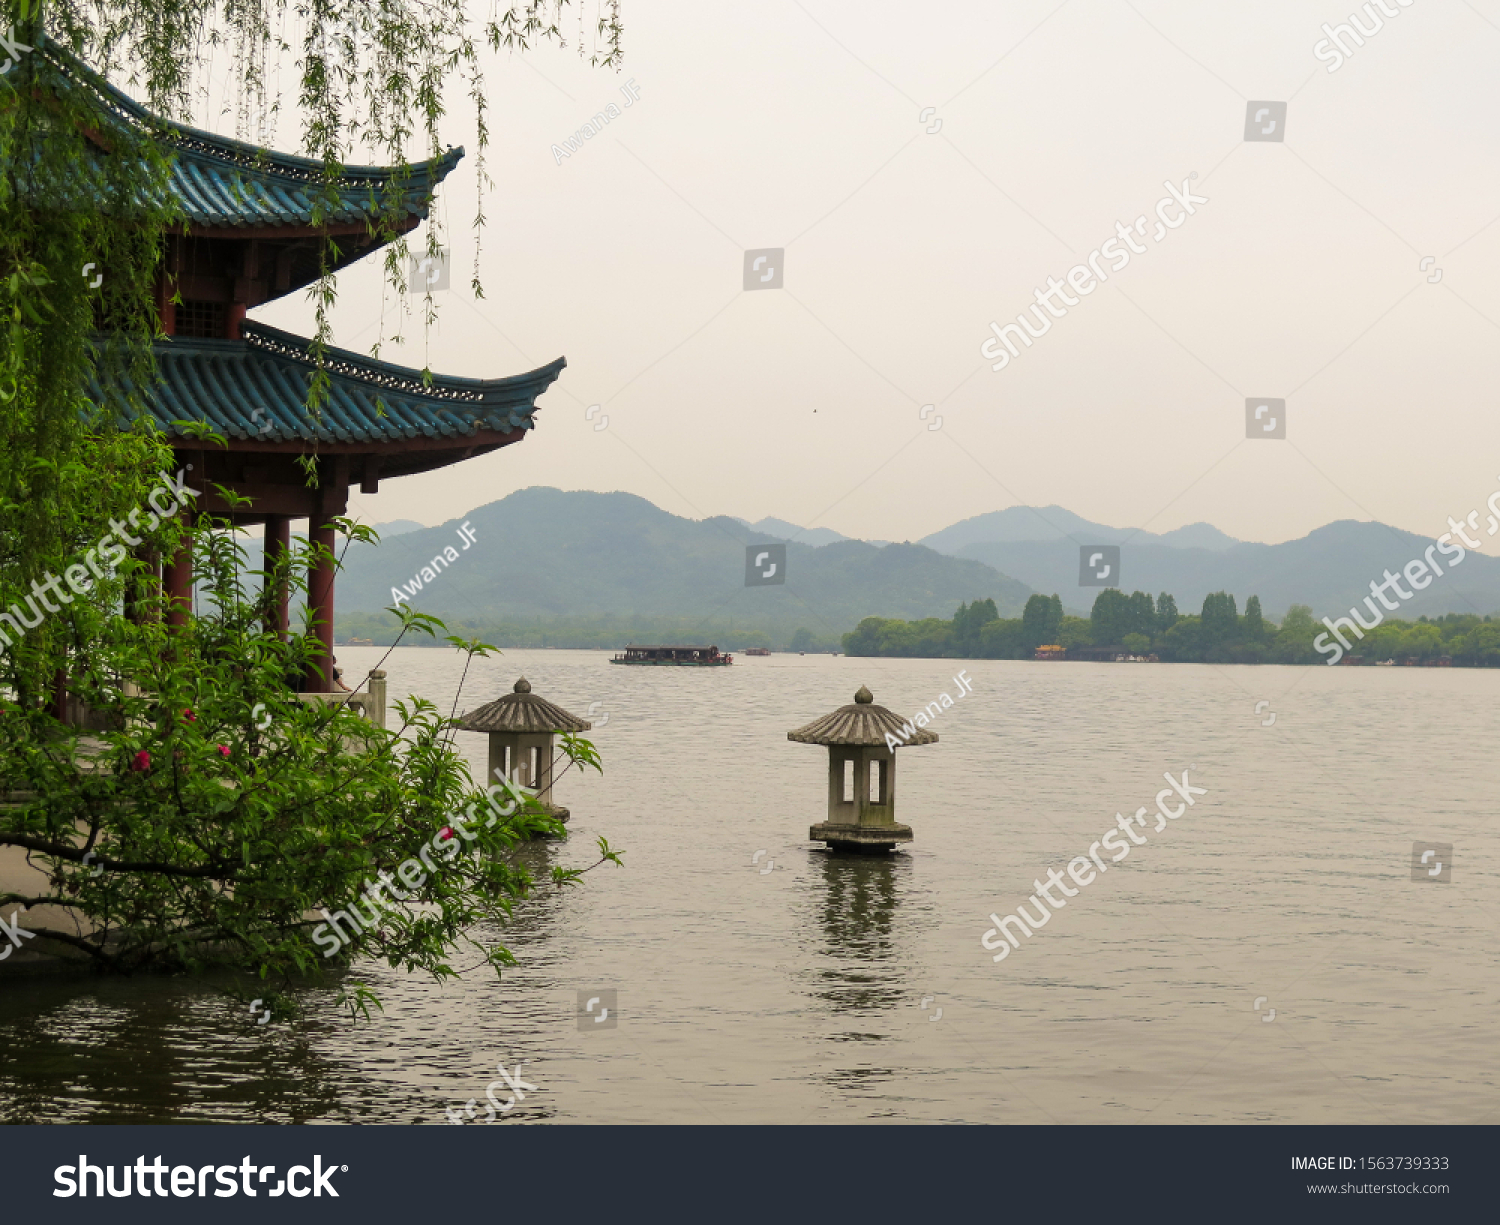 stock-photo-west-lake-of-hangzhou-in-chi